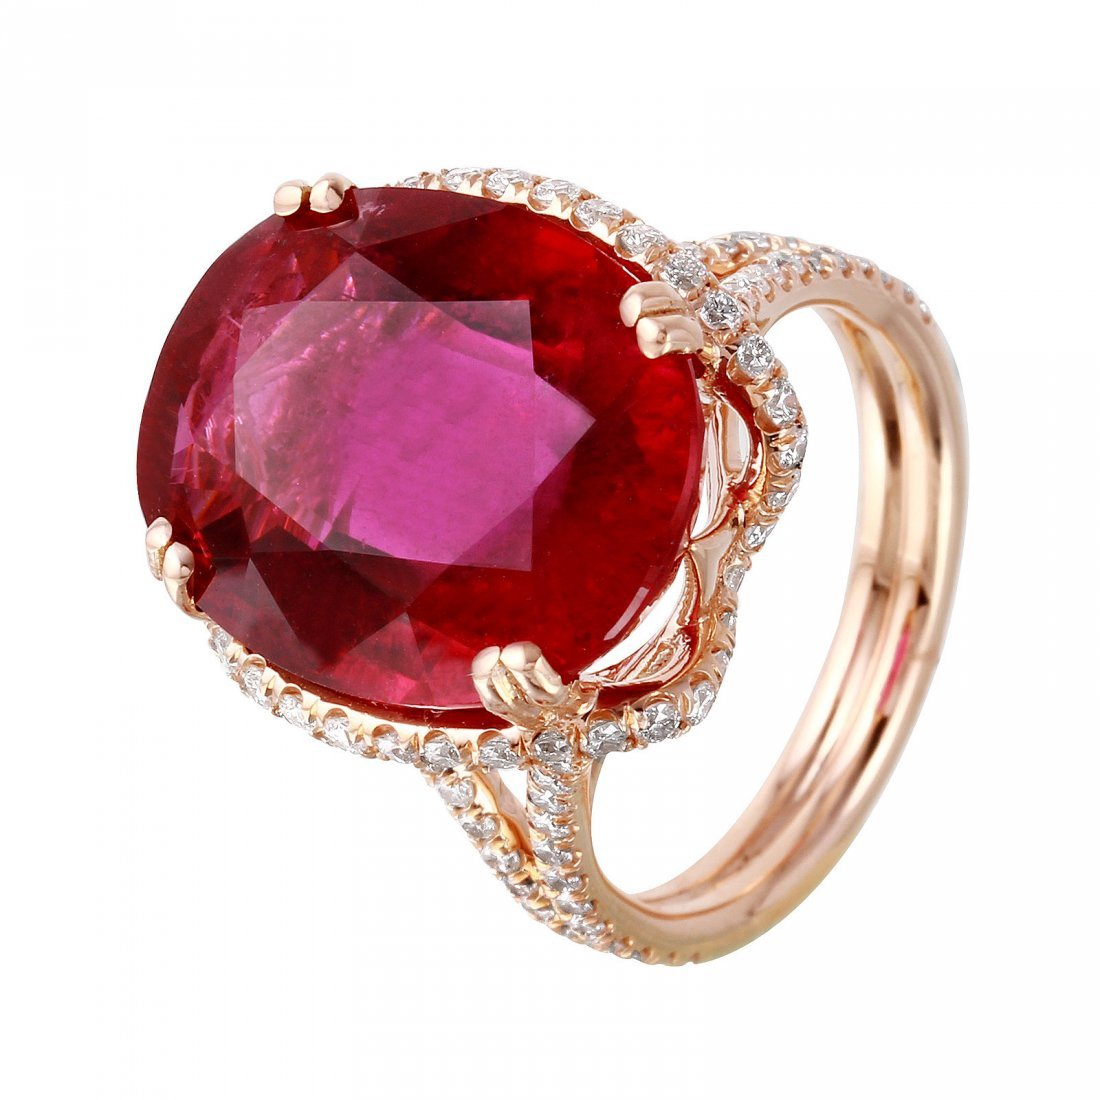 14KT Rose Gold Rubellite and Diamond Ring